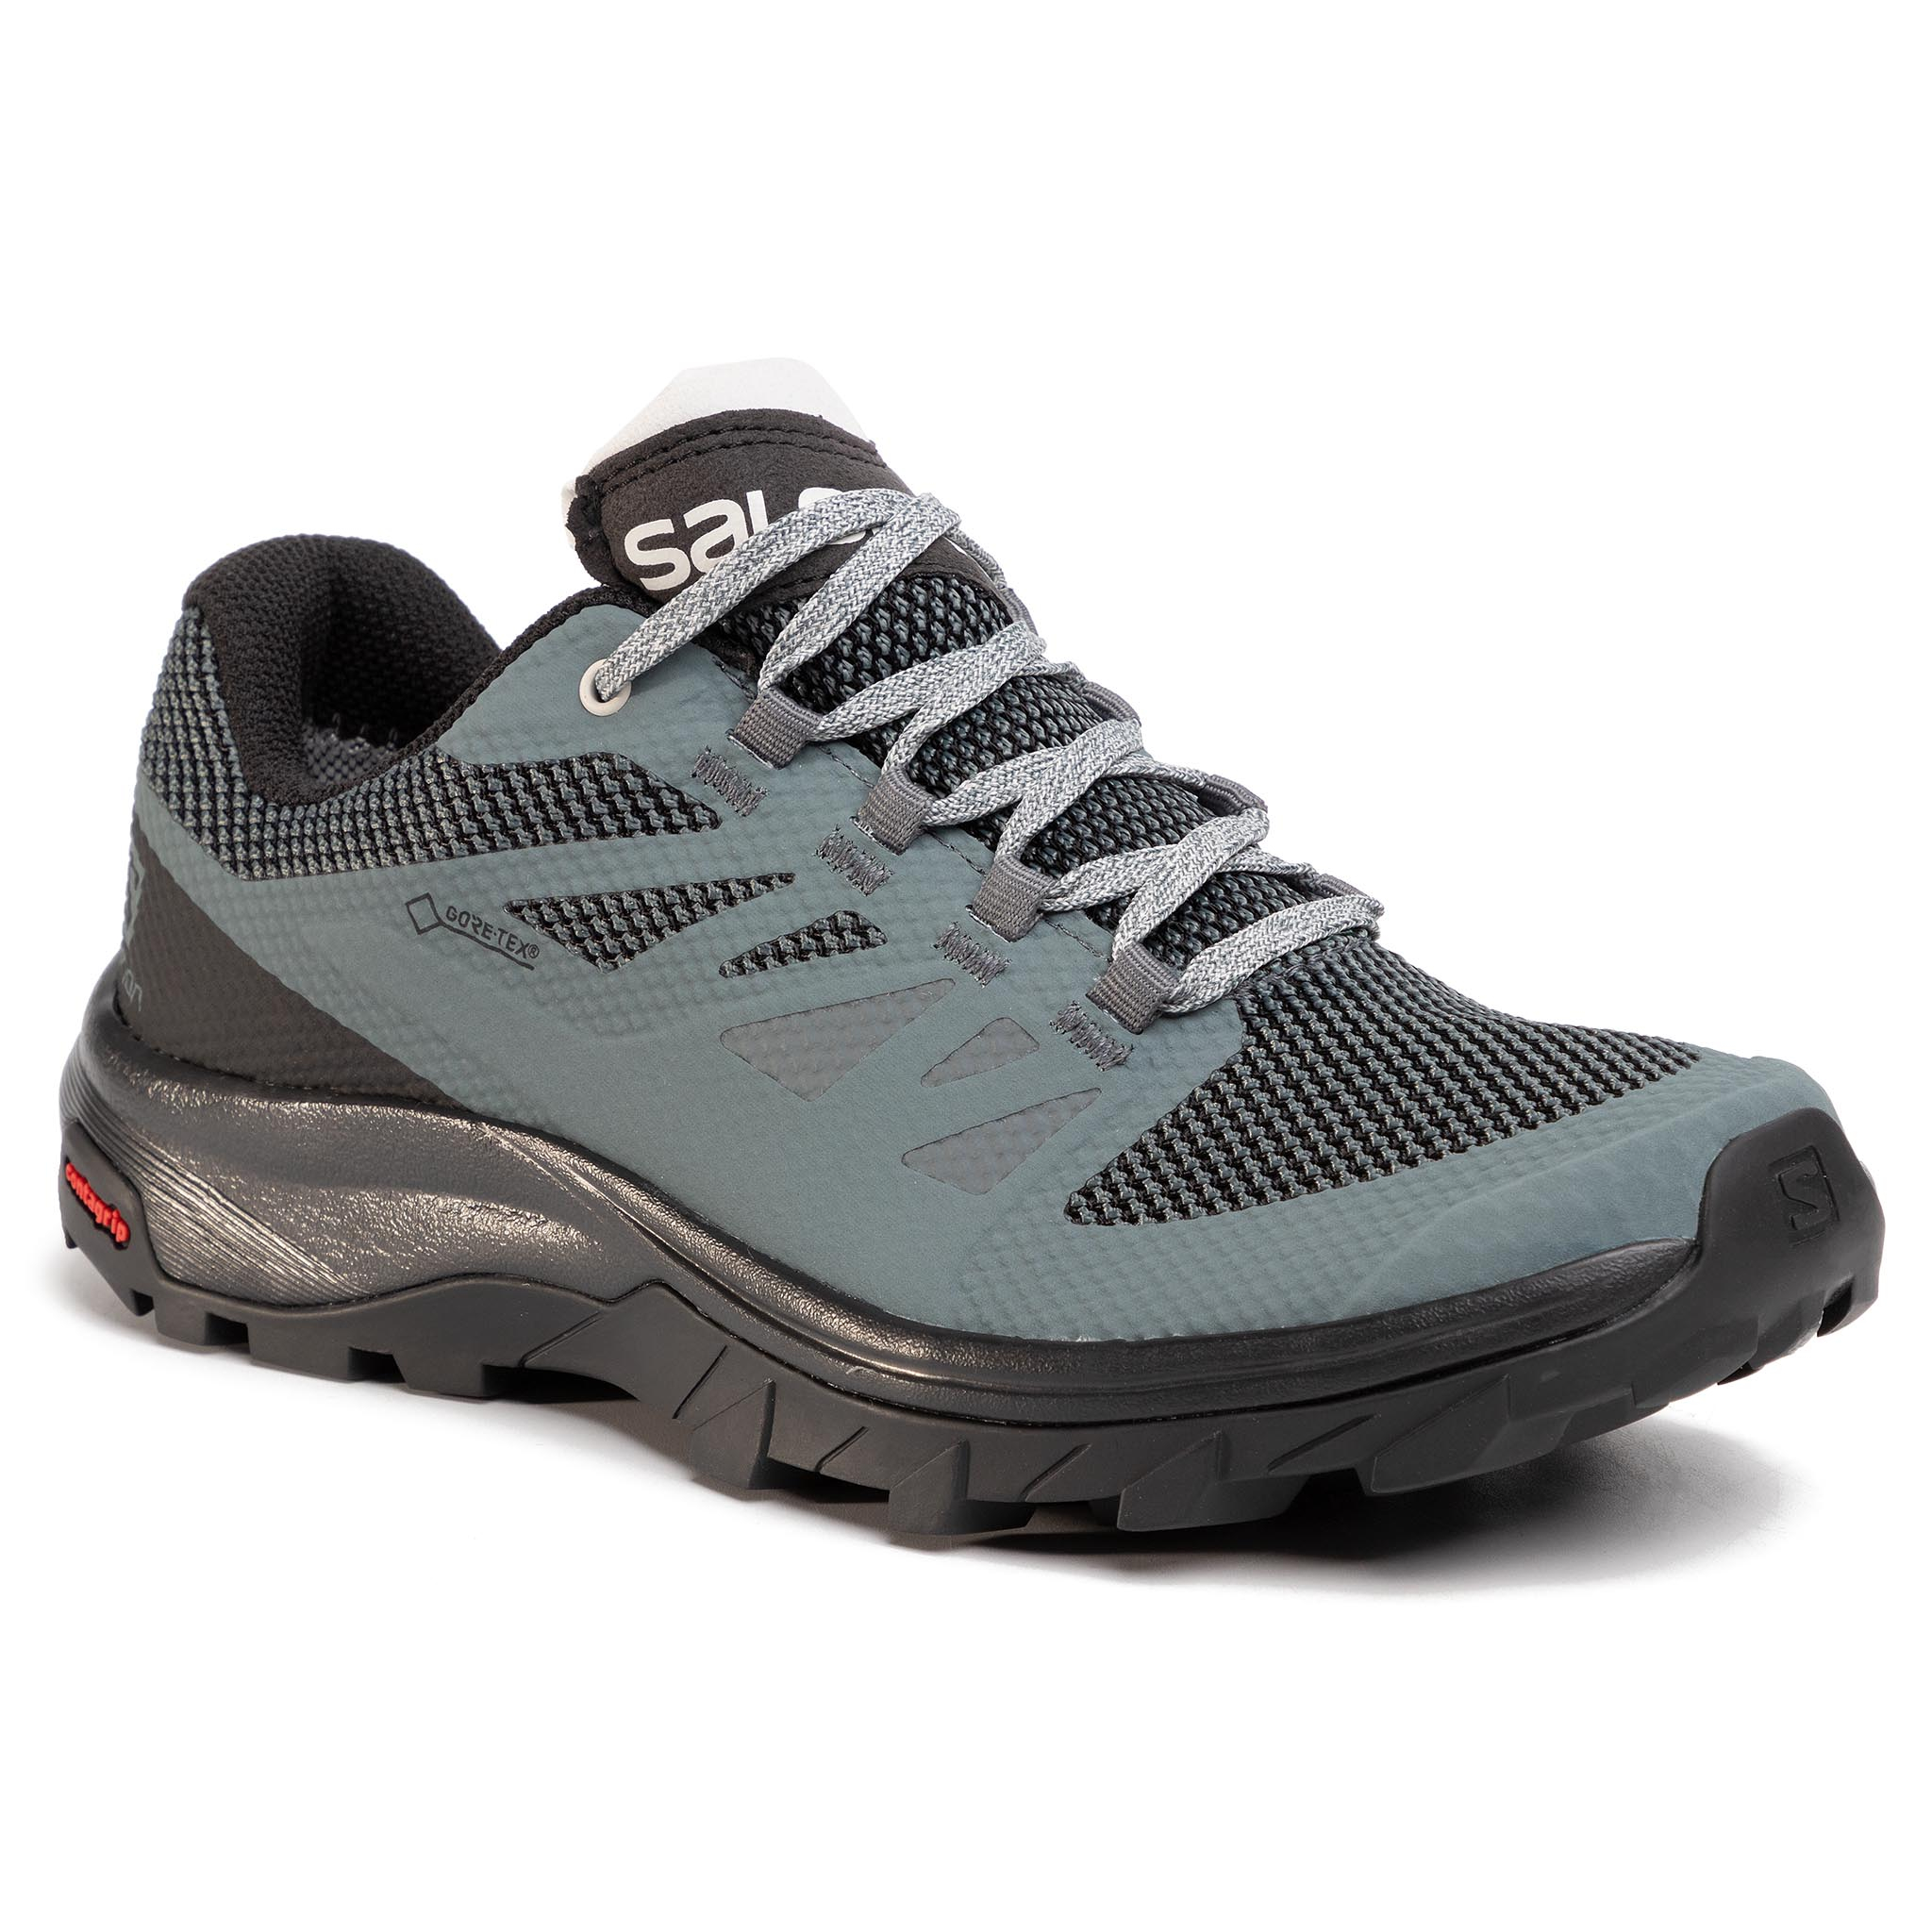 Trekkings SALOMON - Outline Gtx W GORE-TEX 409970 22 M0 Stormy Weather/Black/Lunar Rock